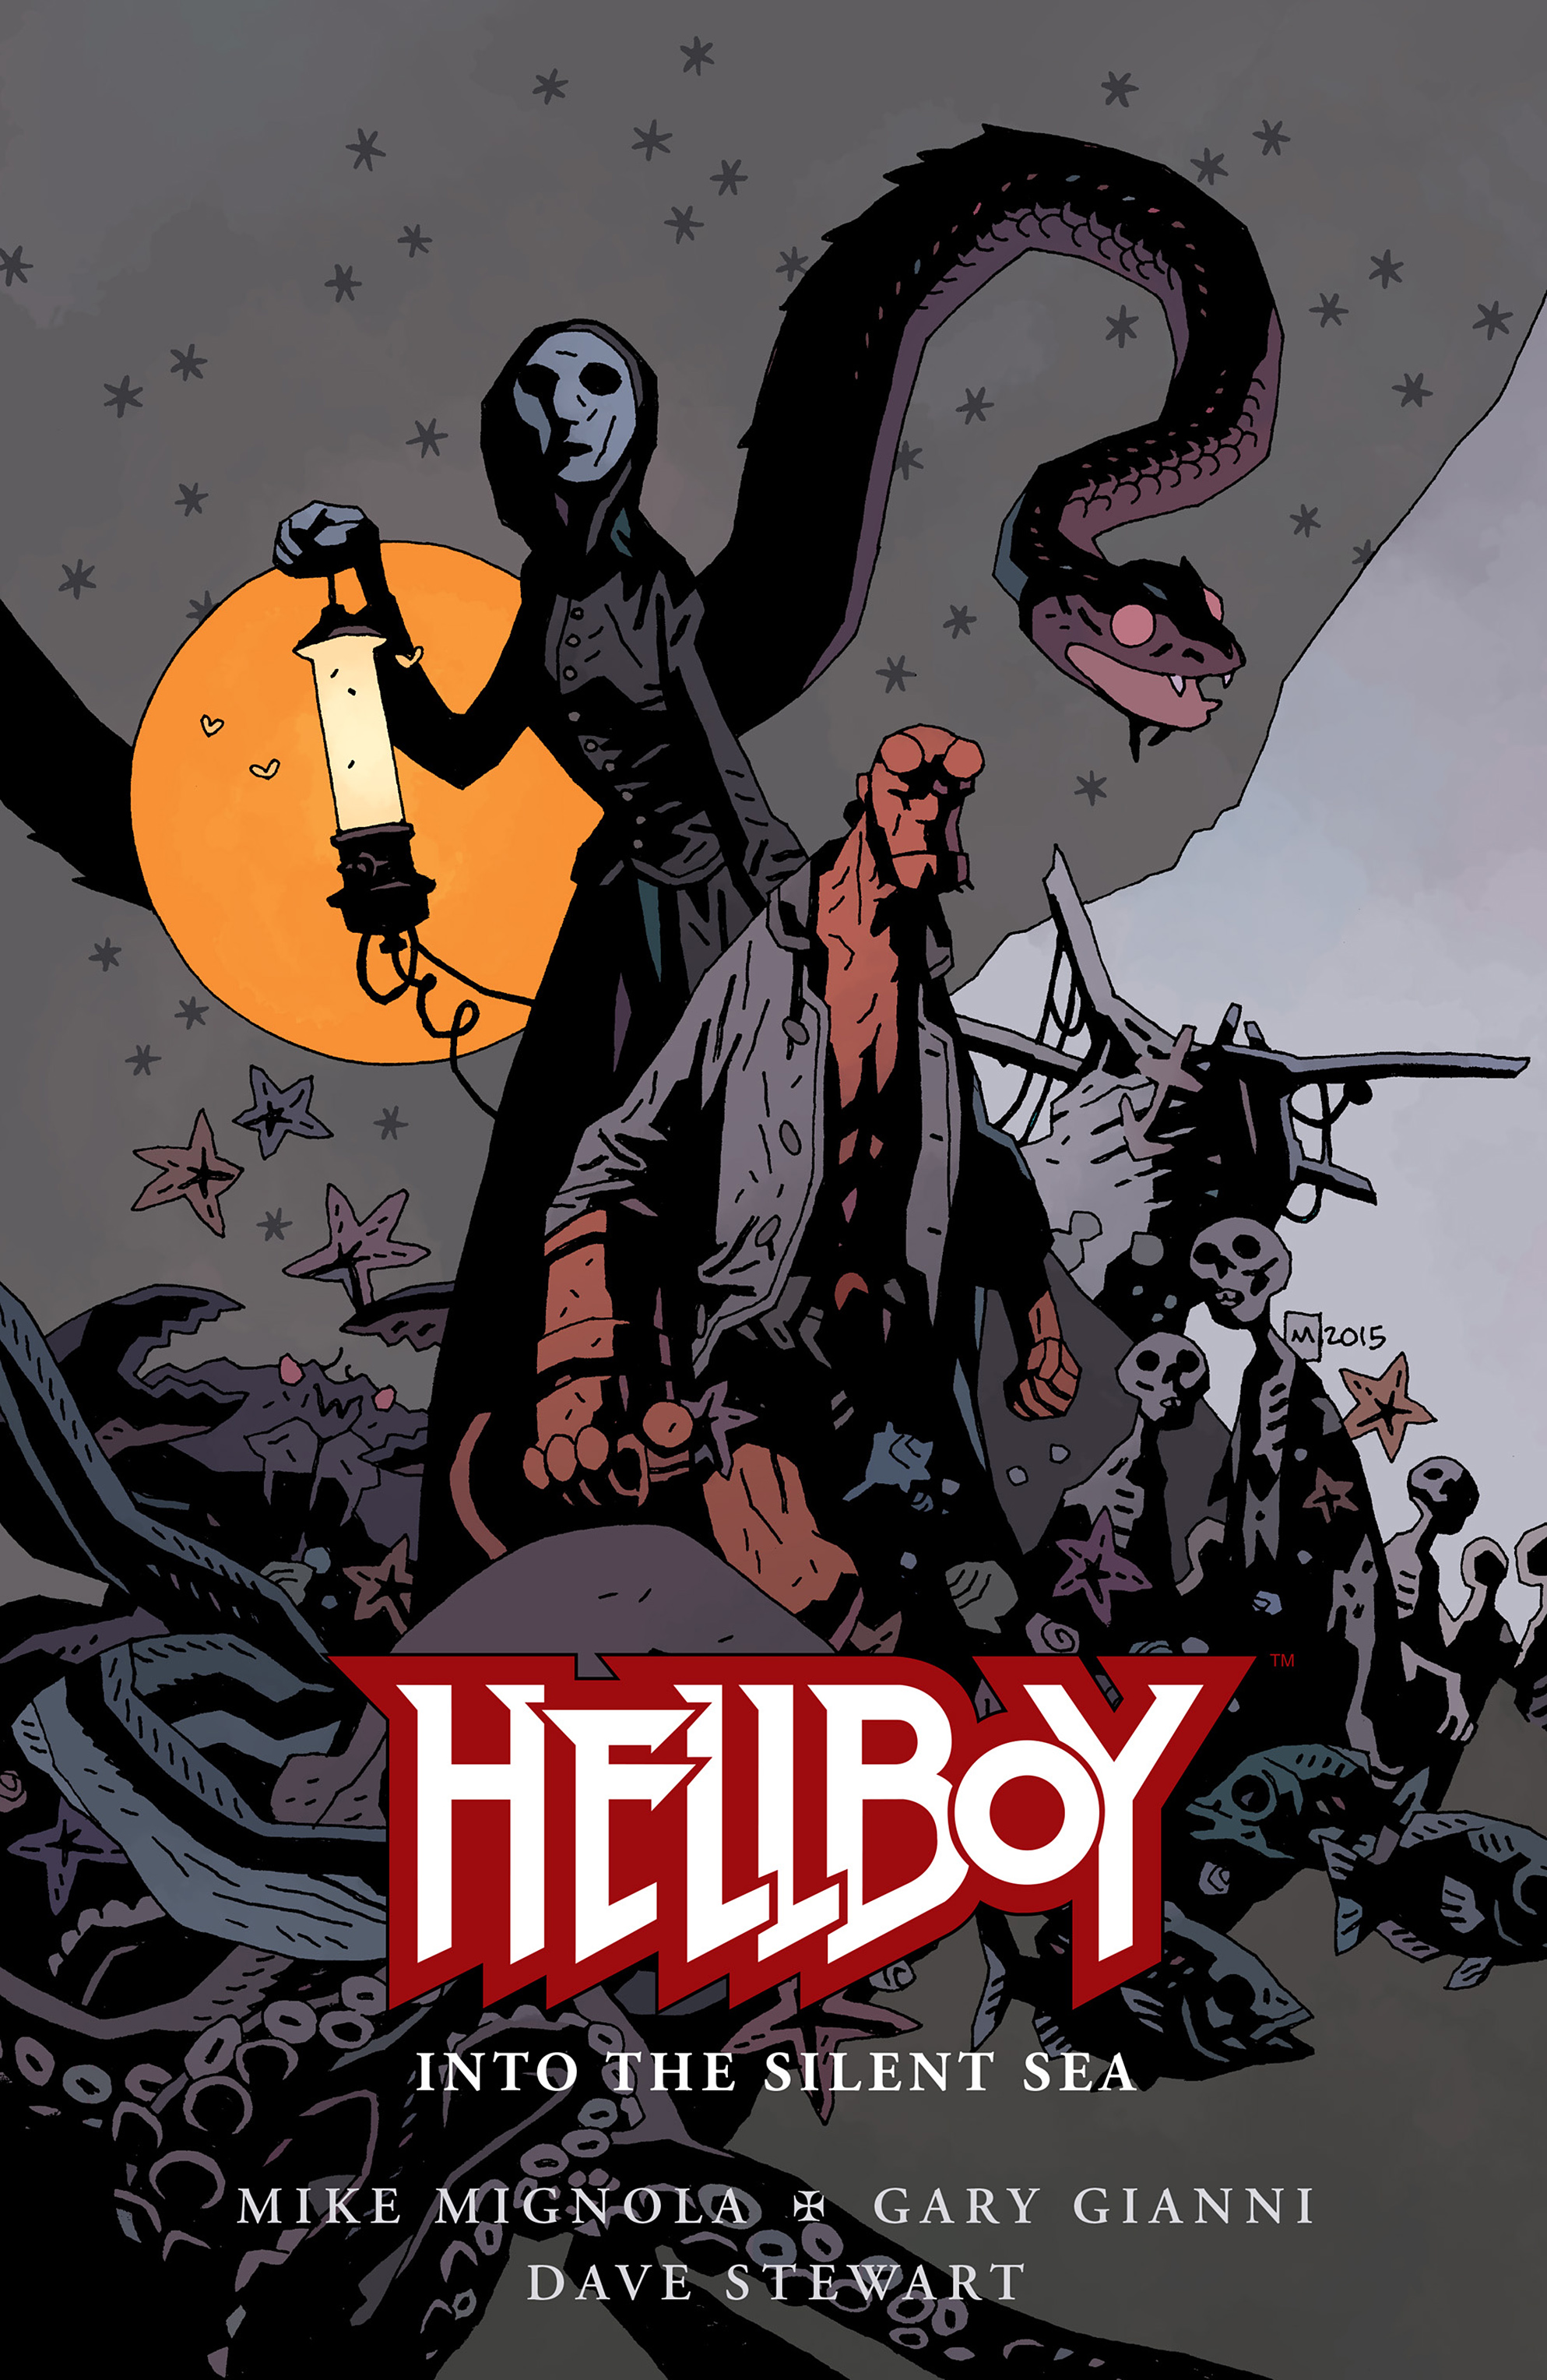 Read online Hellboy: Into the Silent Sea comic -  Issue # Full - 1